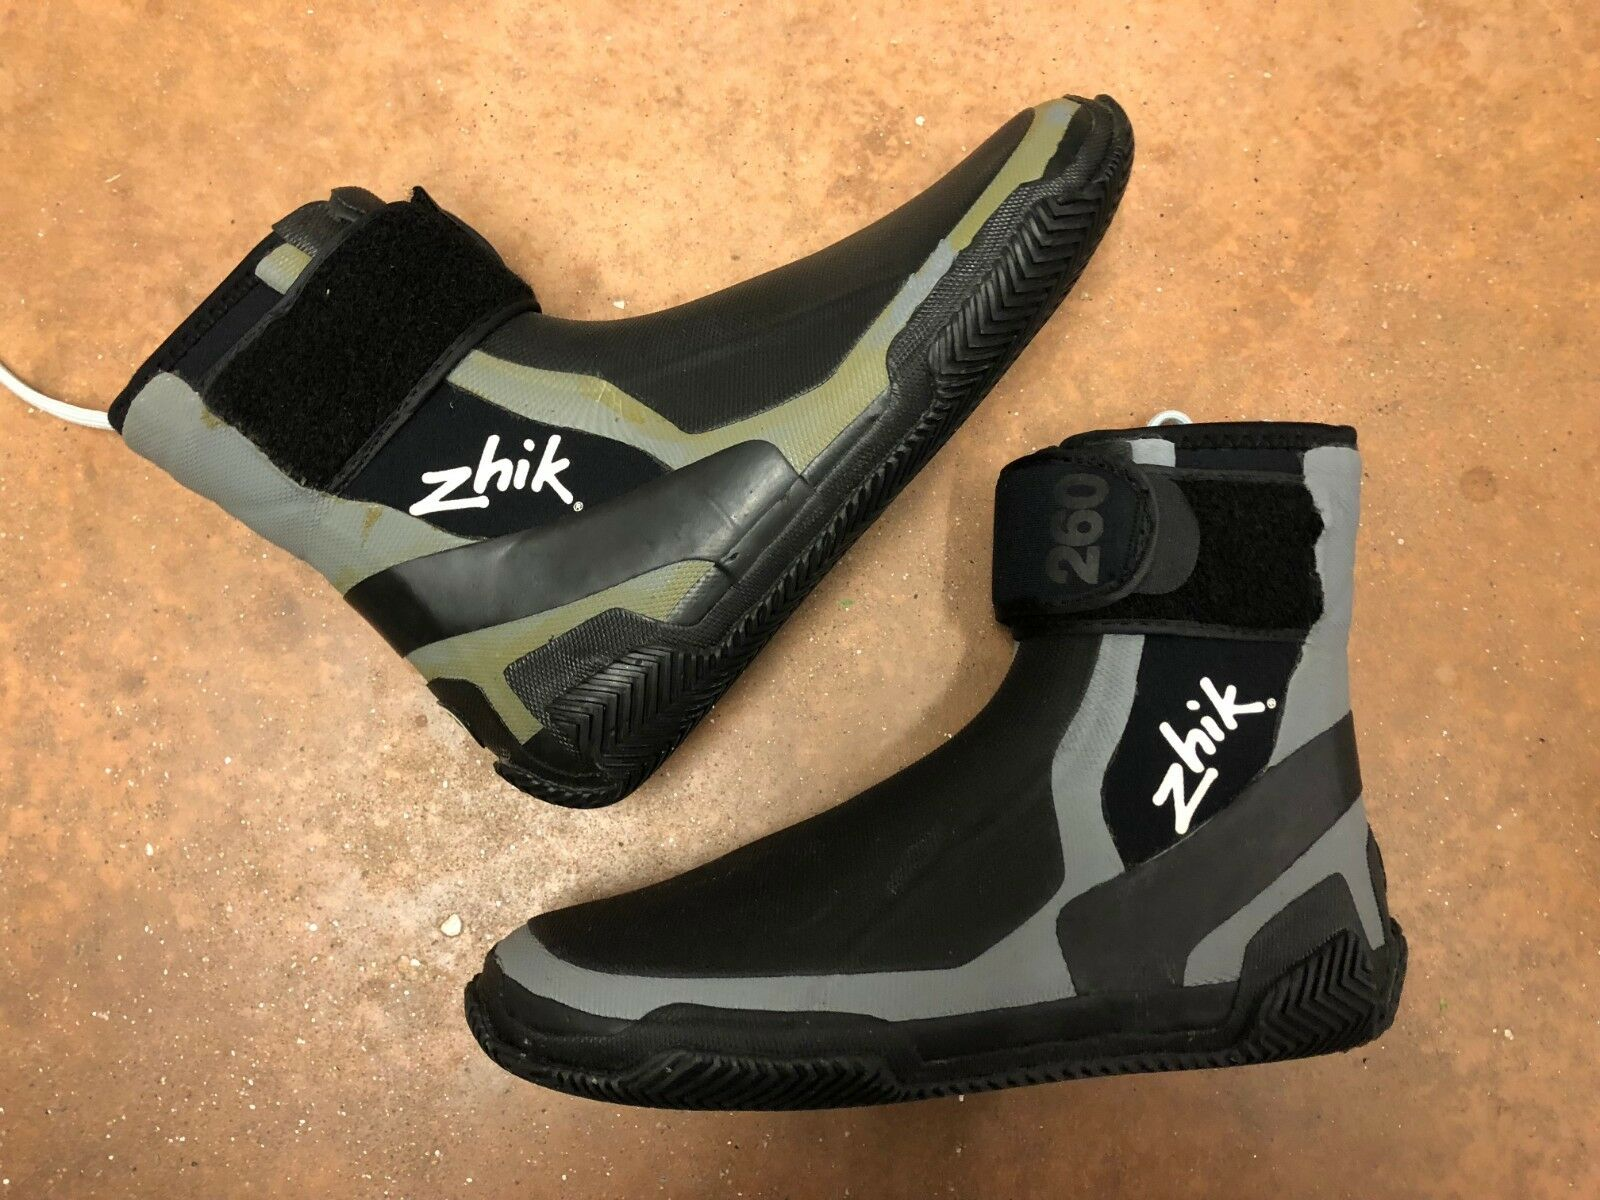 ZHIK HIGHCUT RACE  BOOT Discolord, Size 8.5 US  be in great demand